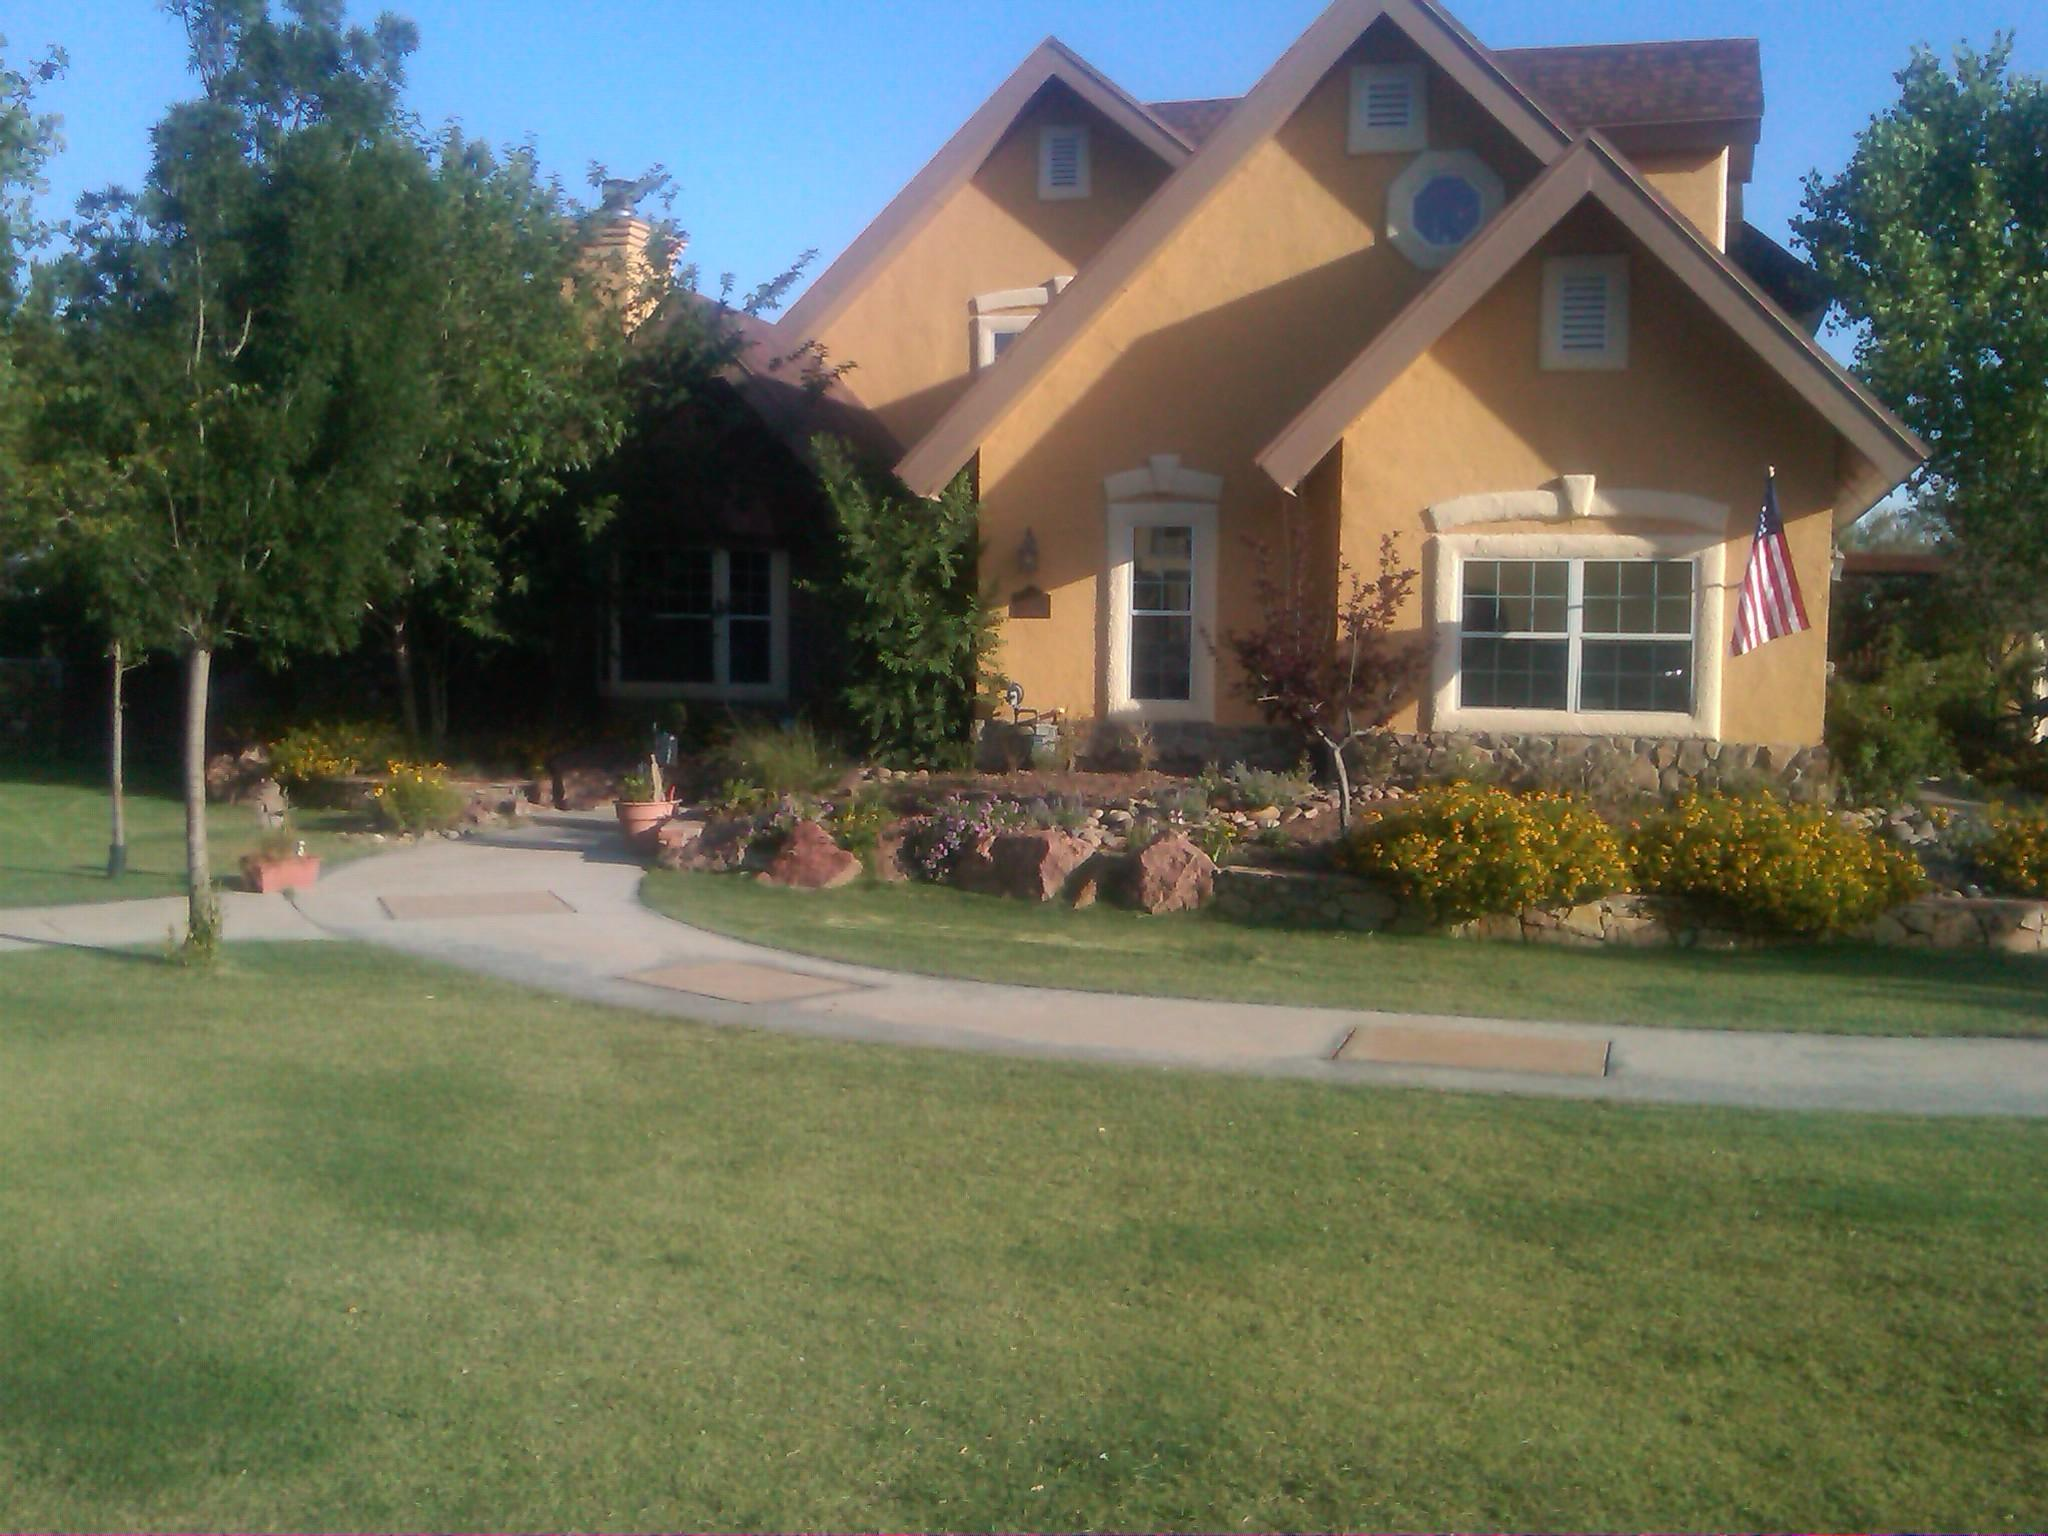 Landscaping gravel el paso tx : Adding depth to an already stylish front yard car really bring your